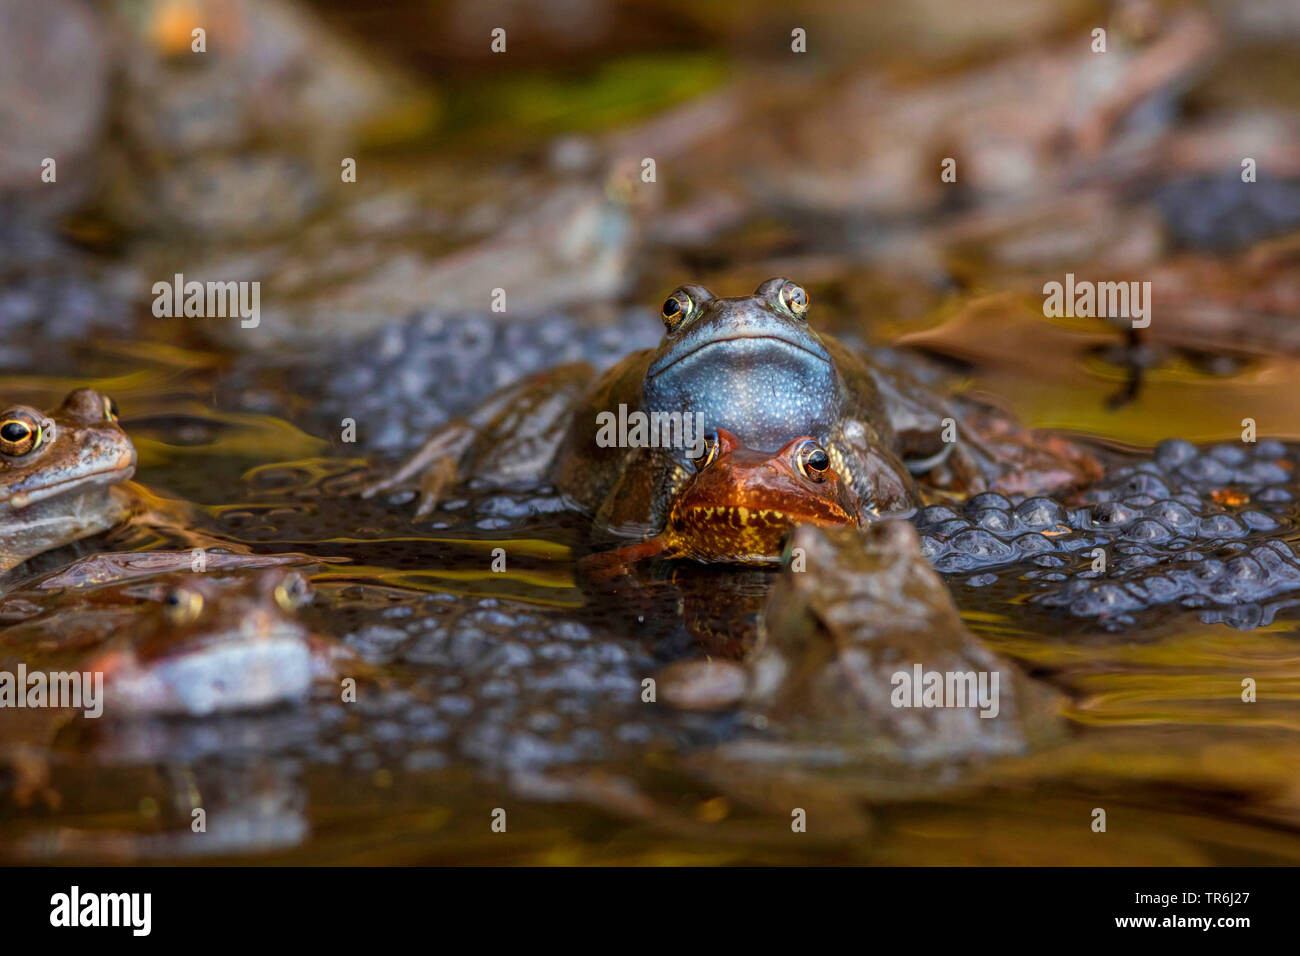 common frog, grass frog (Rana temporaria), spawning with spawn clumps, Germany, Bavaria - Stock Image